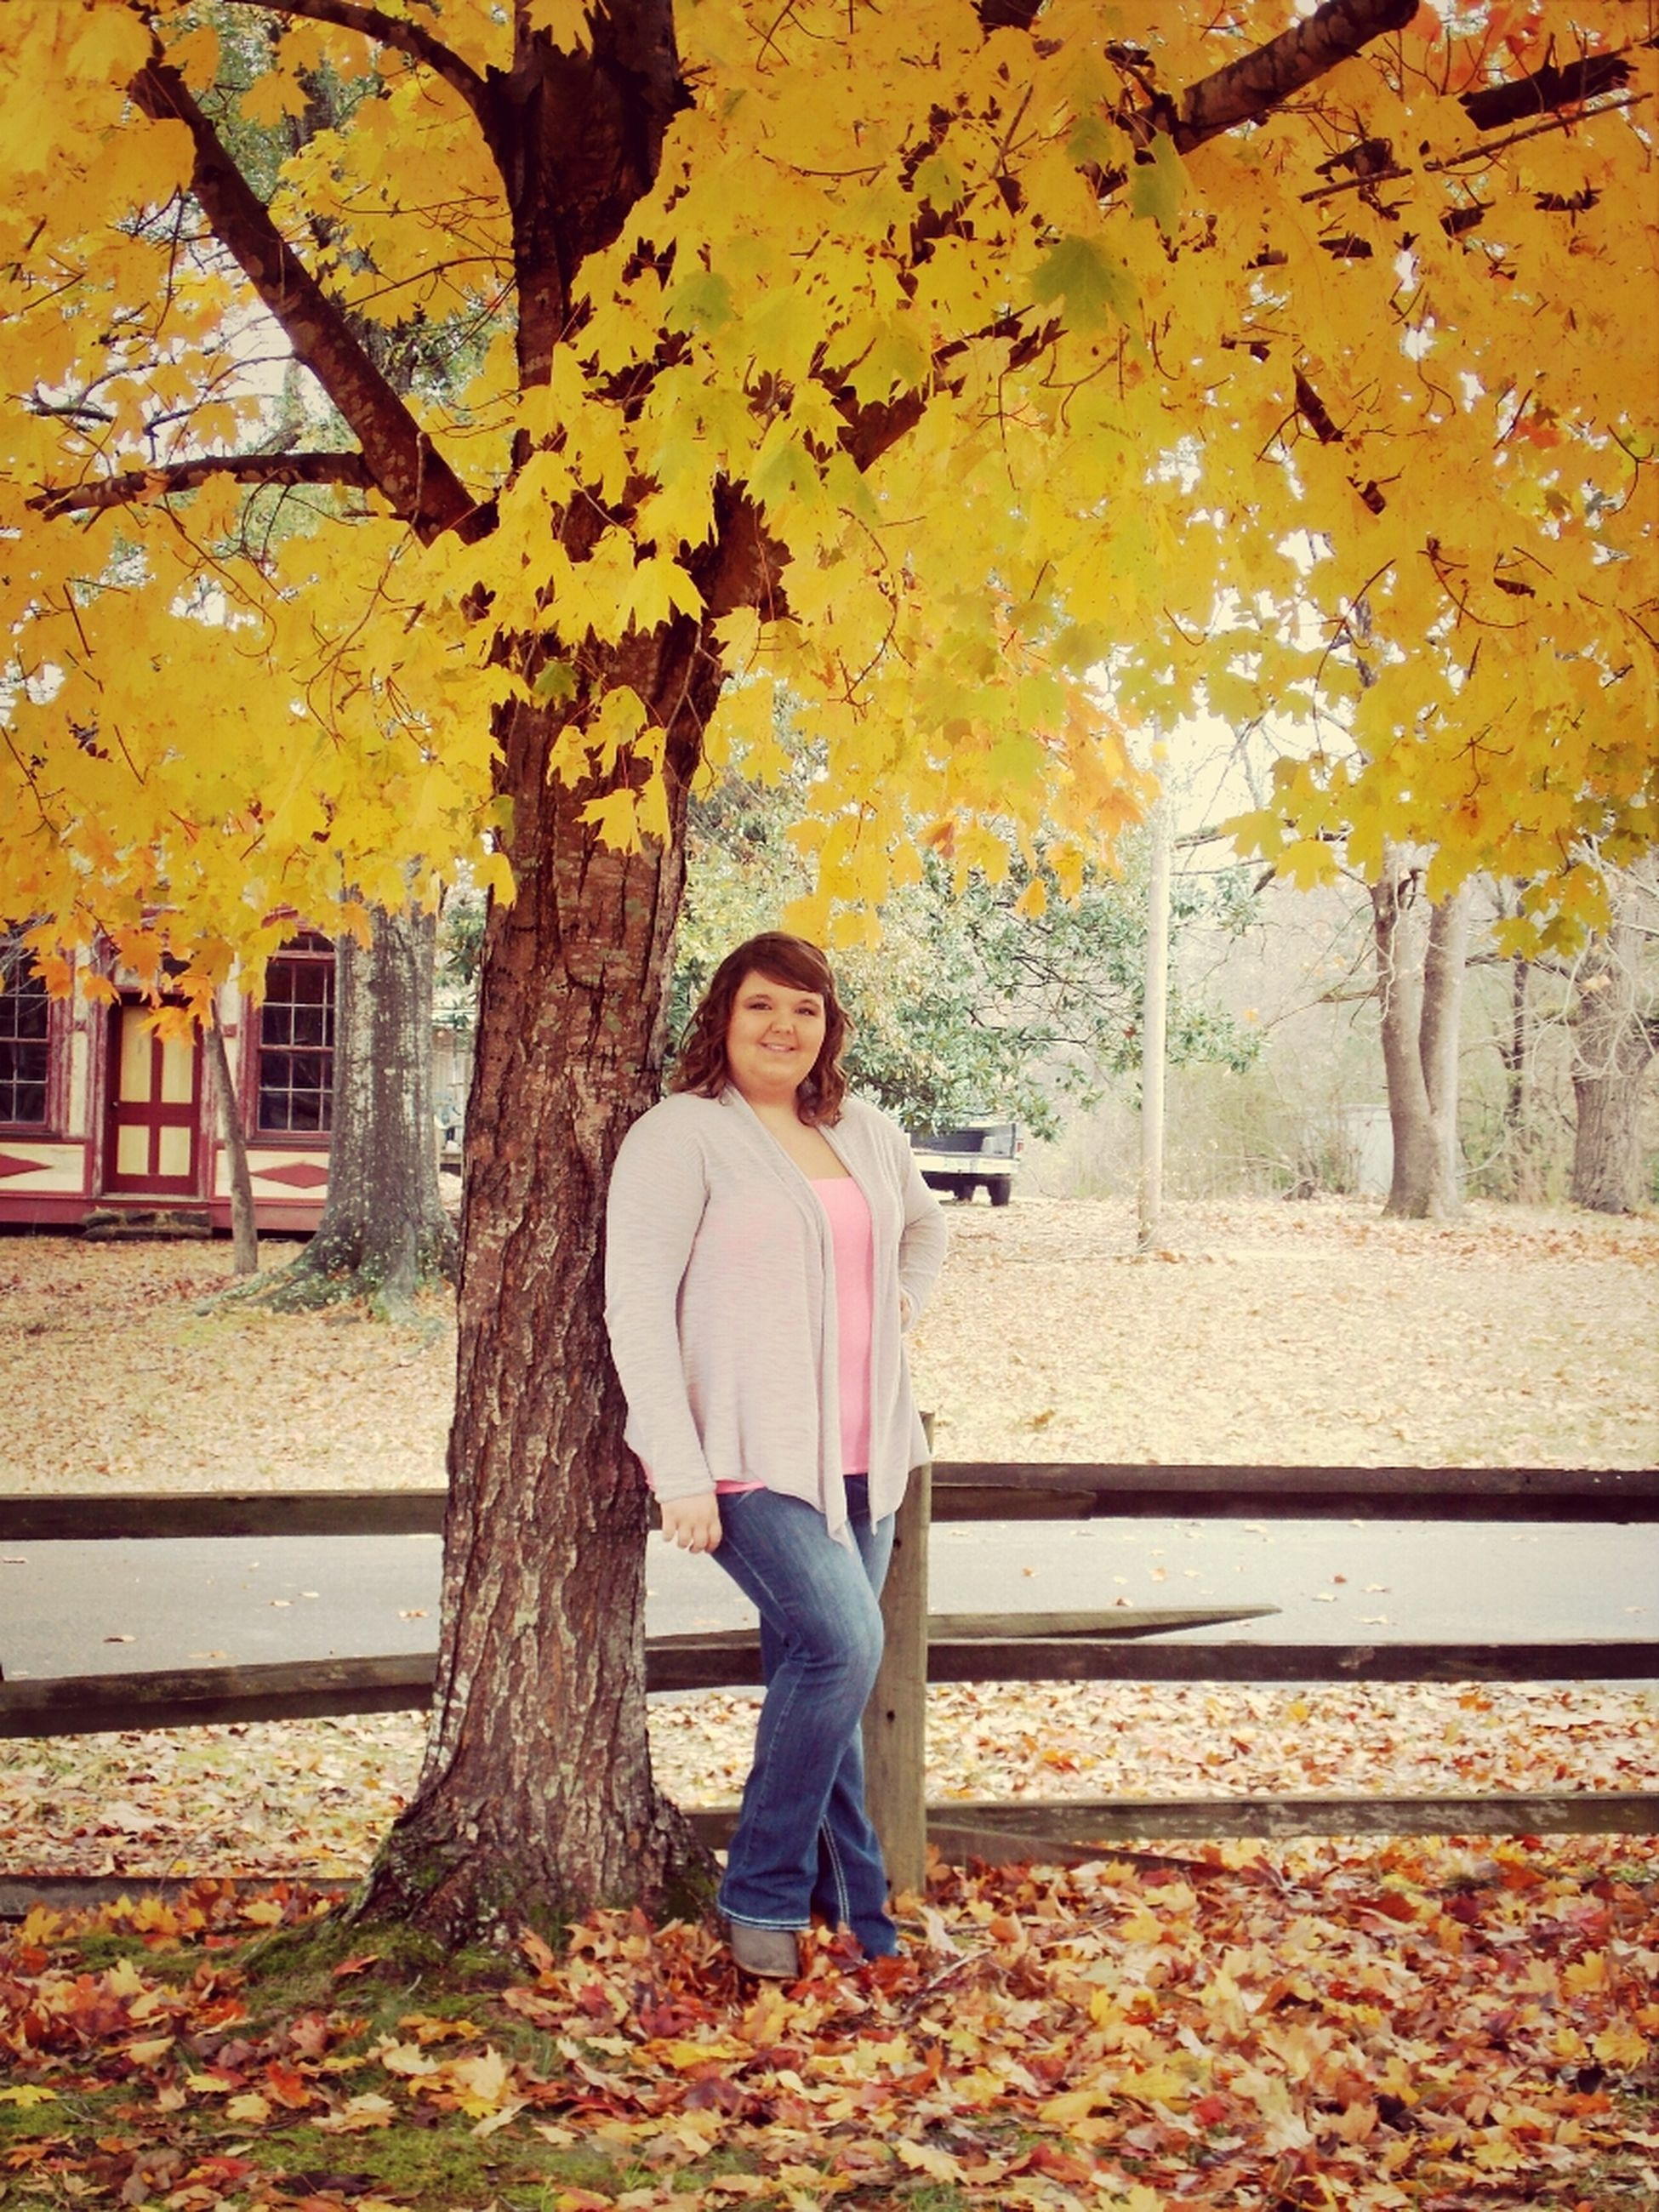 tree, person, casual clothing, lifestyles, autumn, full length, young adult, leisure activity, standing, season, young women, change, park - man made space, front view, looking at camera, leaf, long hair, smiling